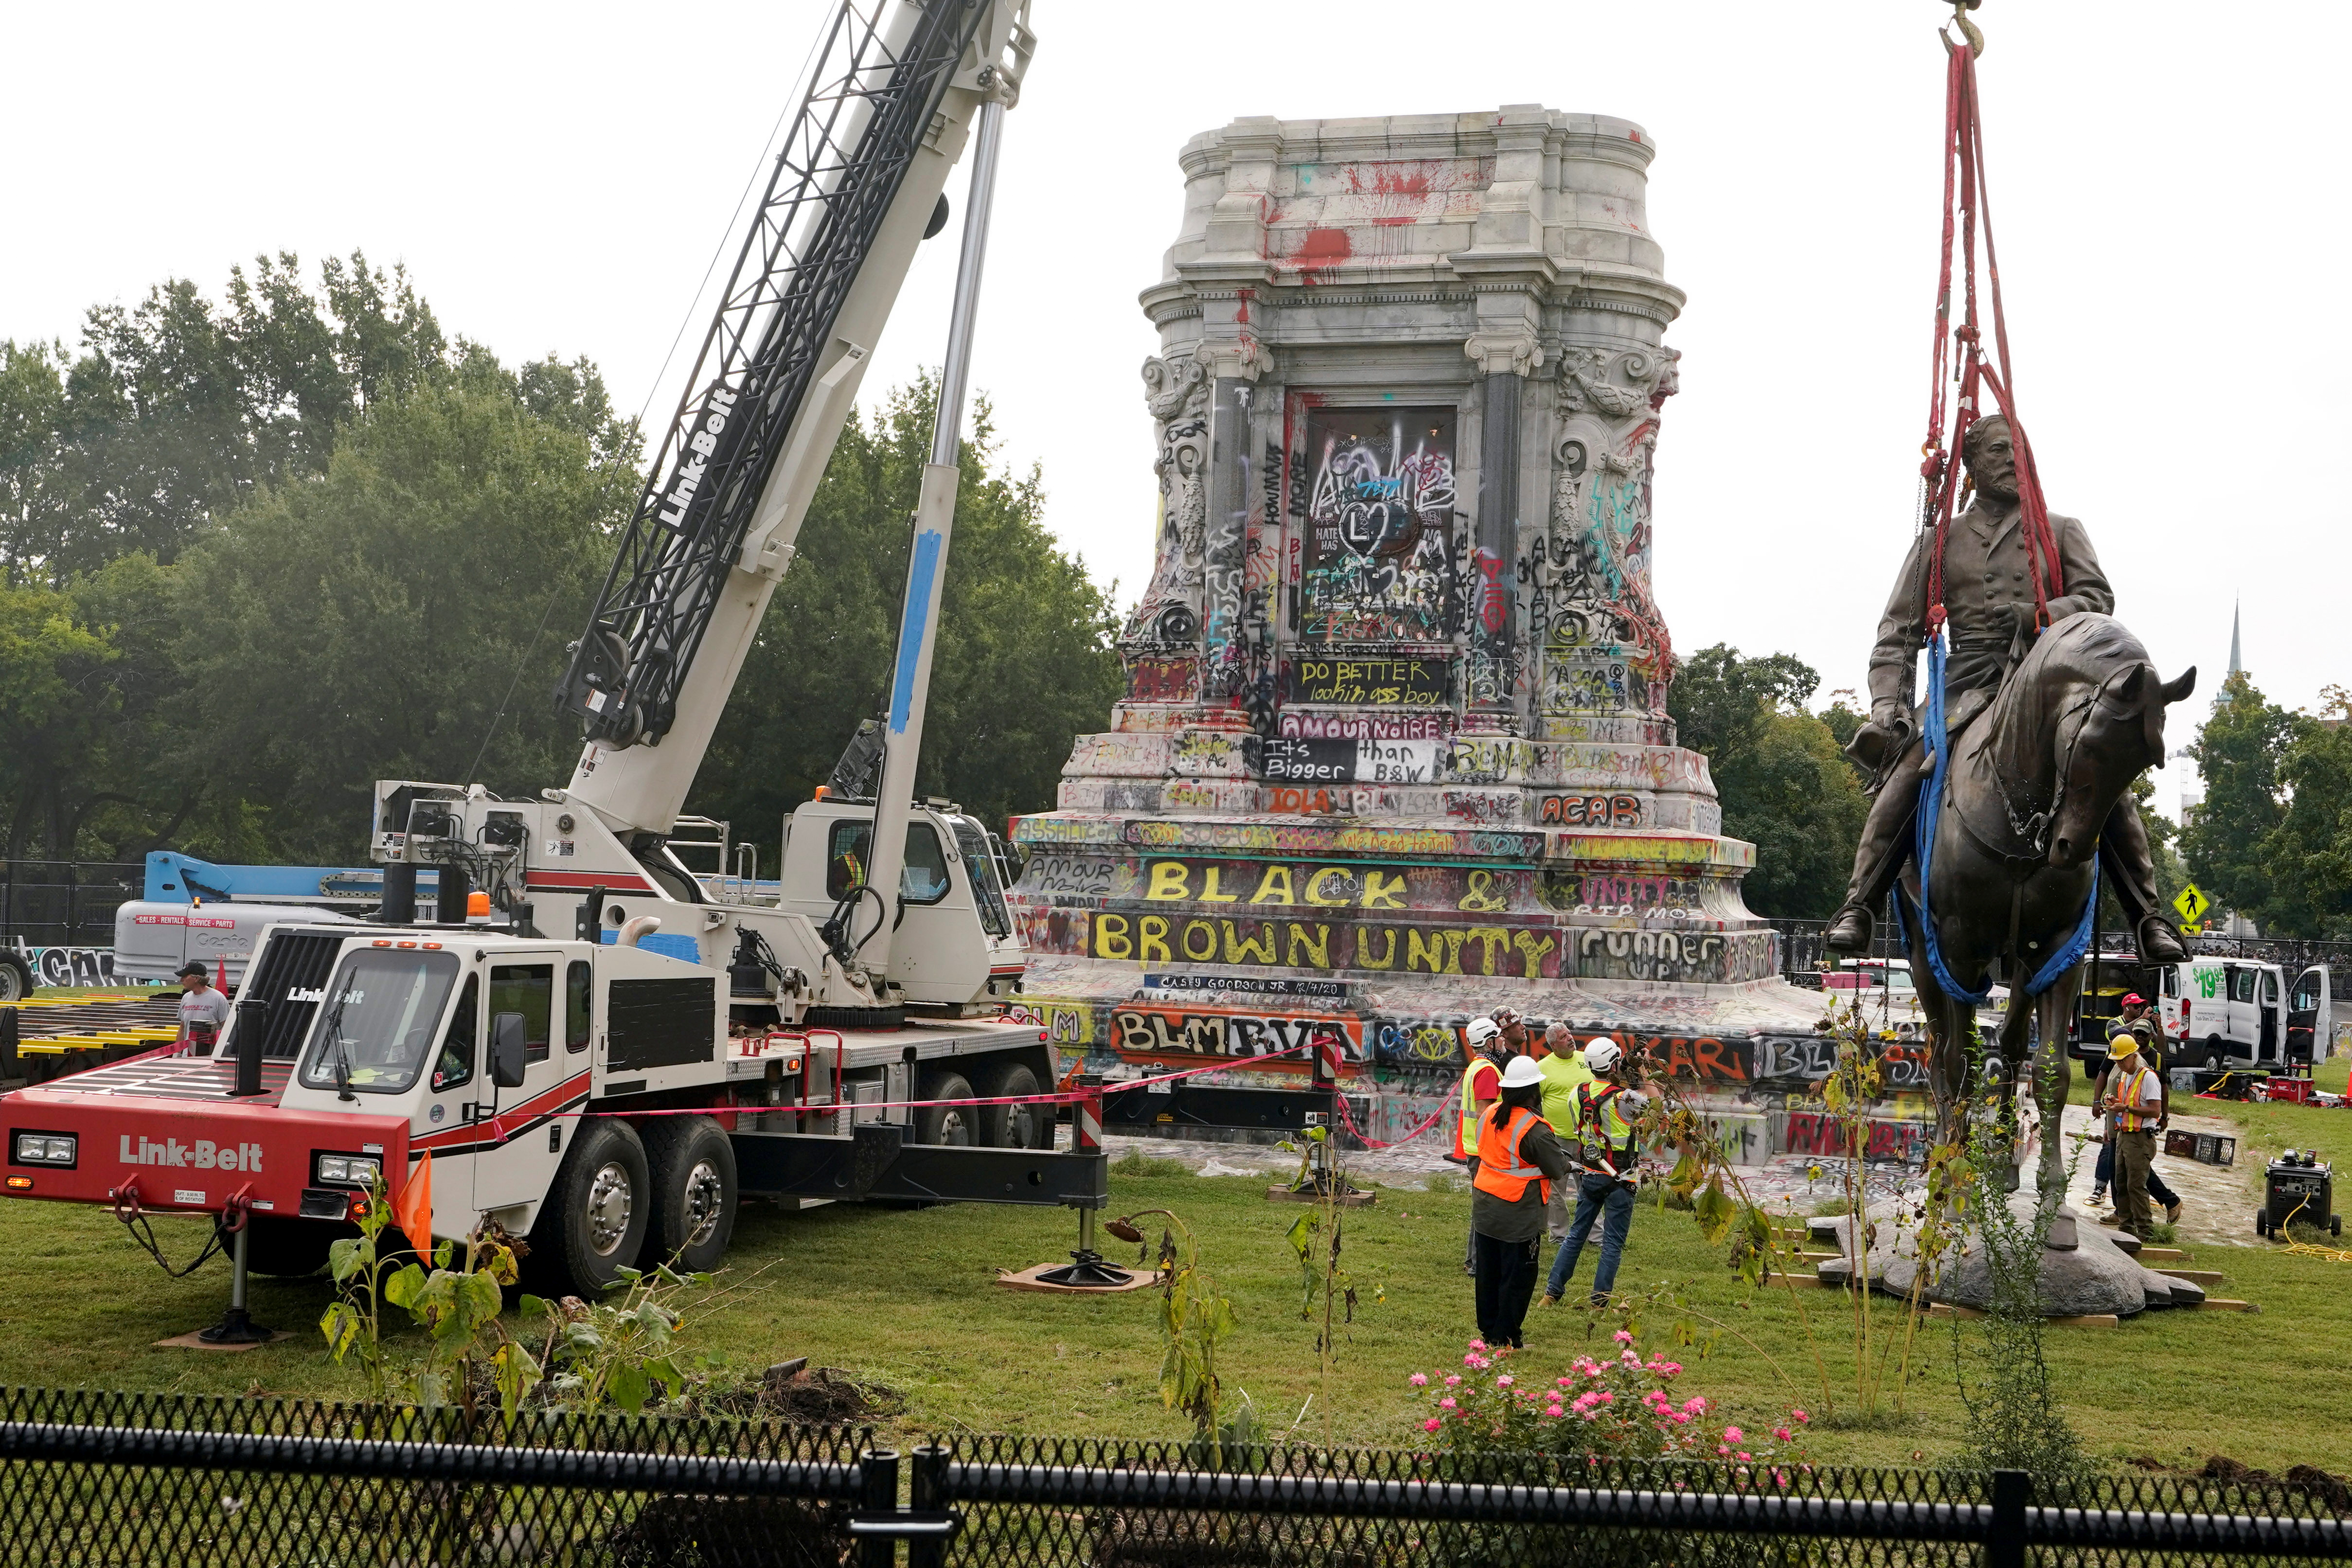 Crews remove one of U.S.'s largest remaining monuments to the Confederacy, a towering statue of Confederate General Robert E. Lee on Monument Avenue in Richmond, Virginia, U.S., September 8, 2021. Steve Helber/Pool via REUTERS